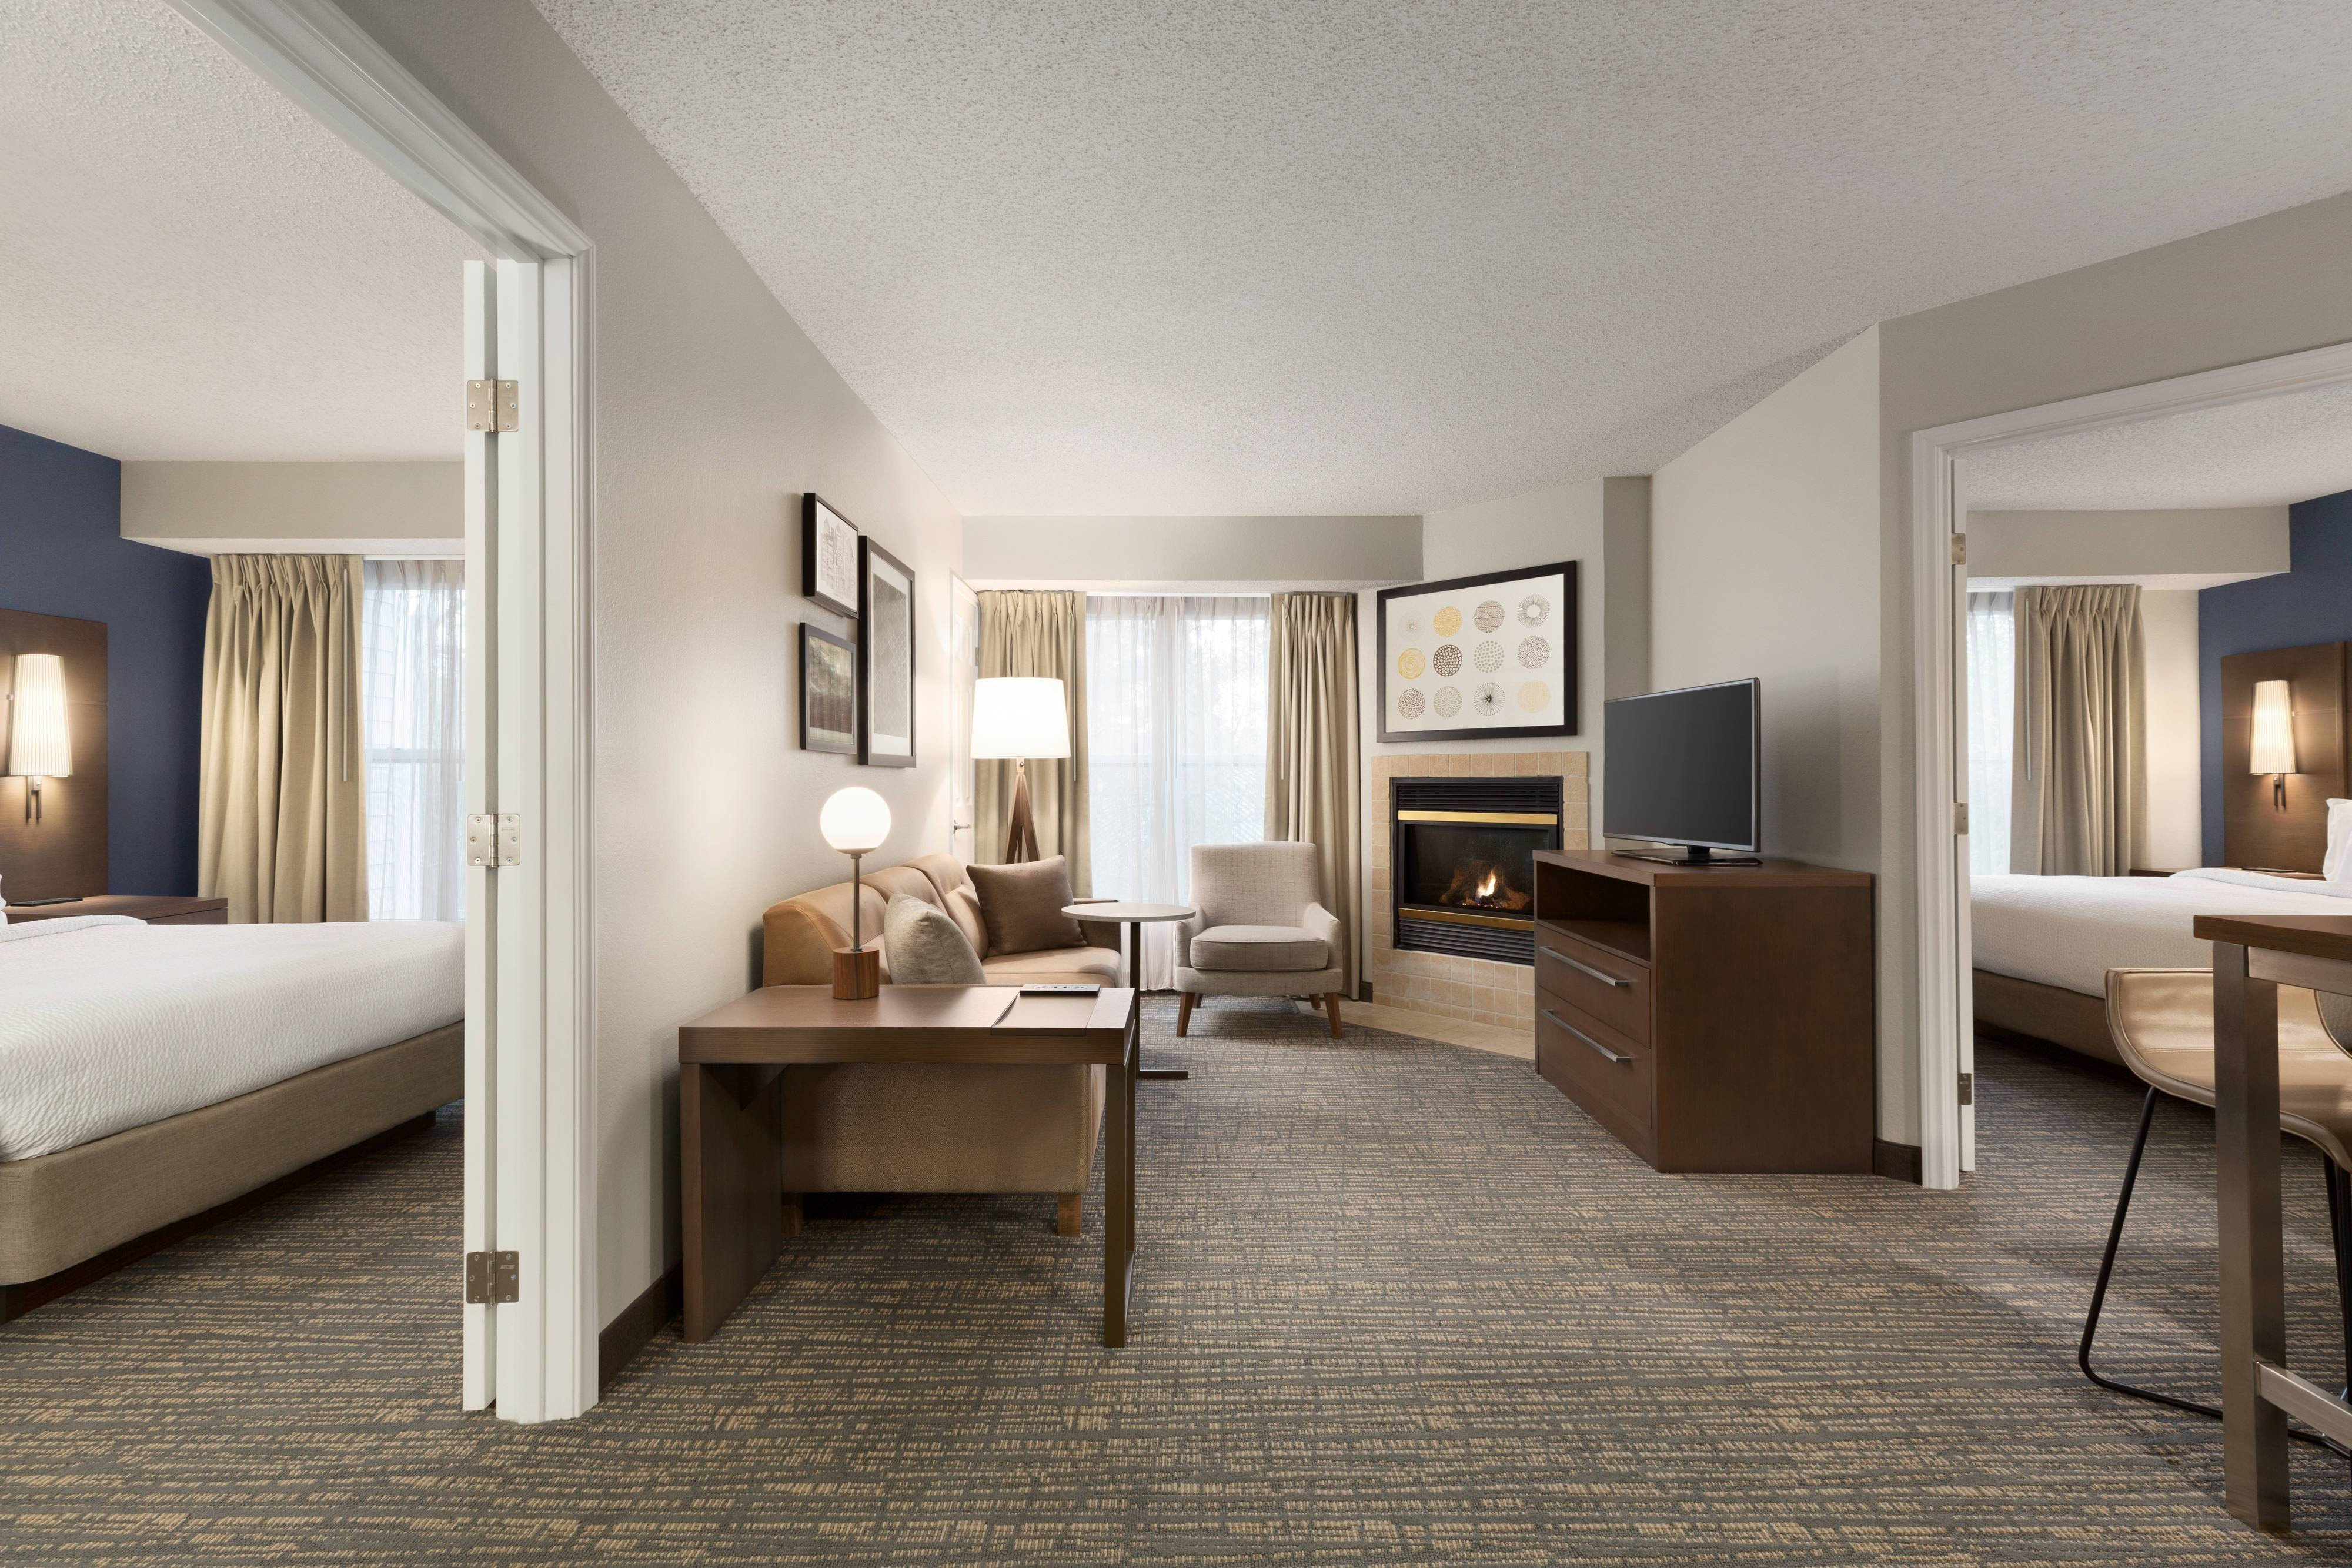 Best Hotels In The Woodlands Tx Residence Inn Houston The With Pictures